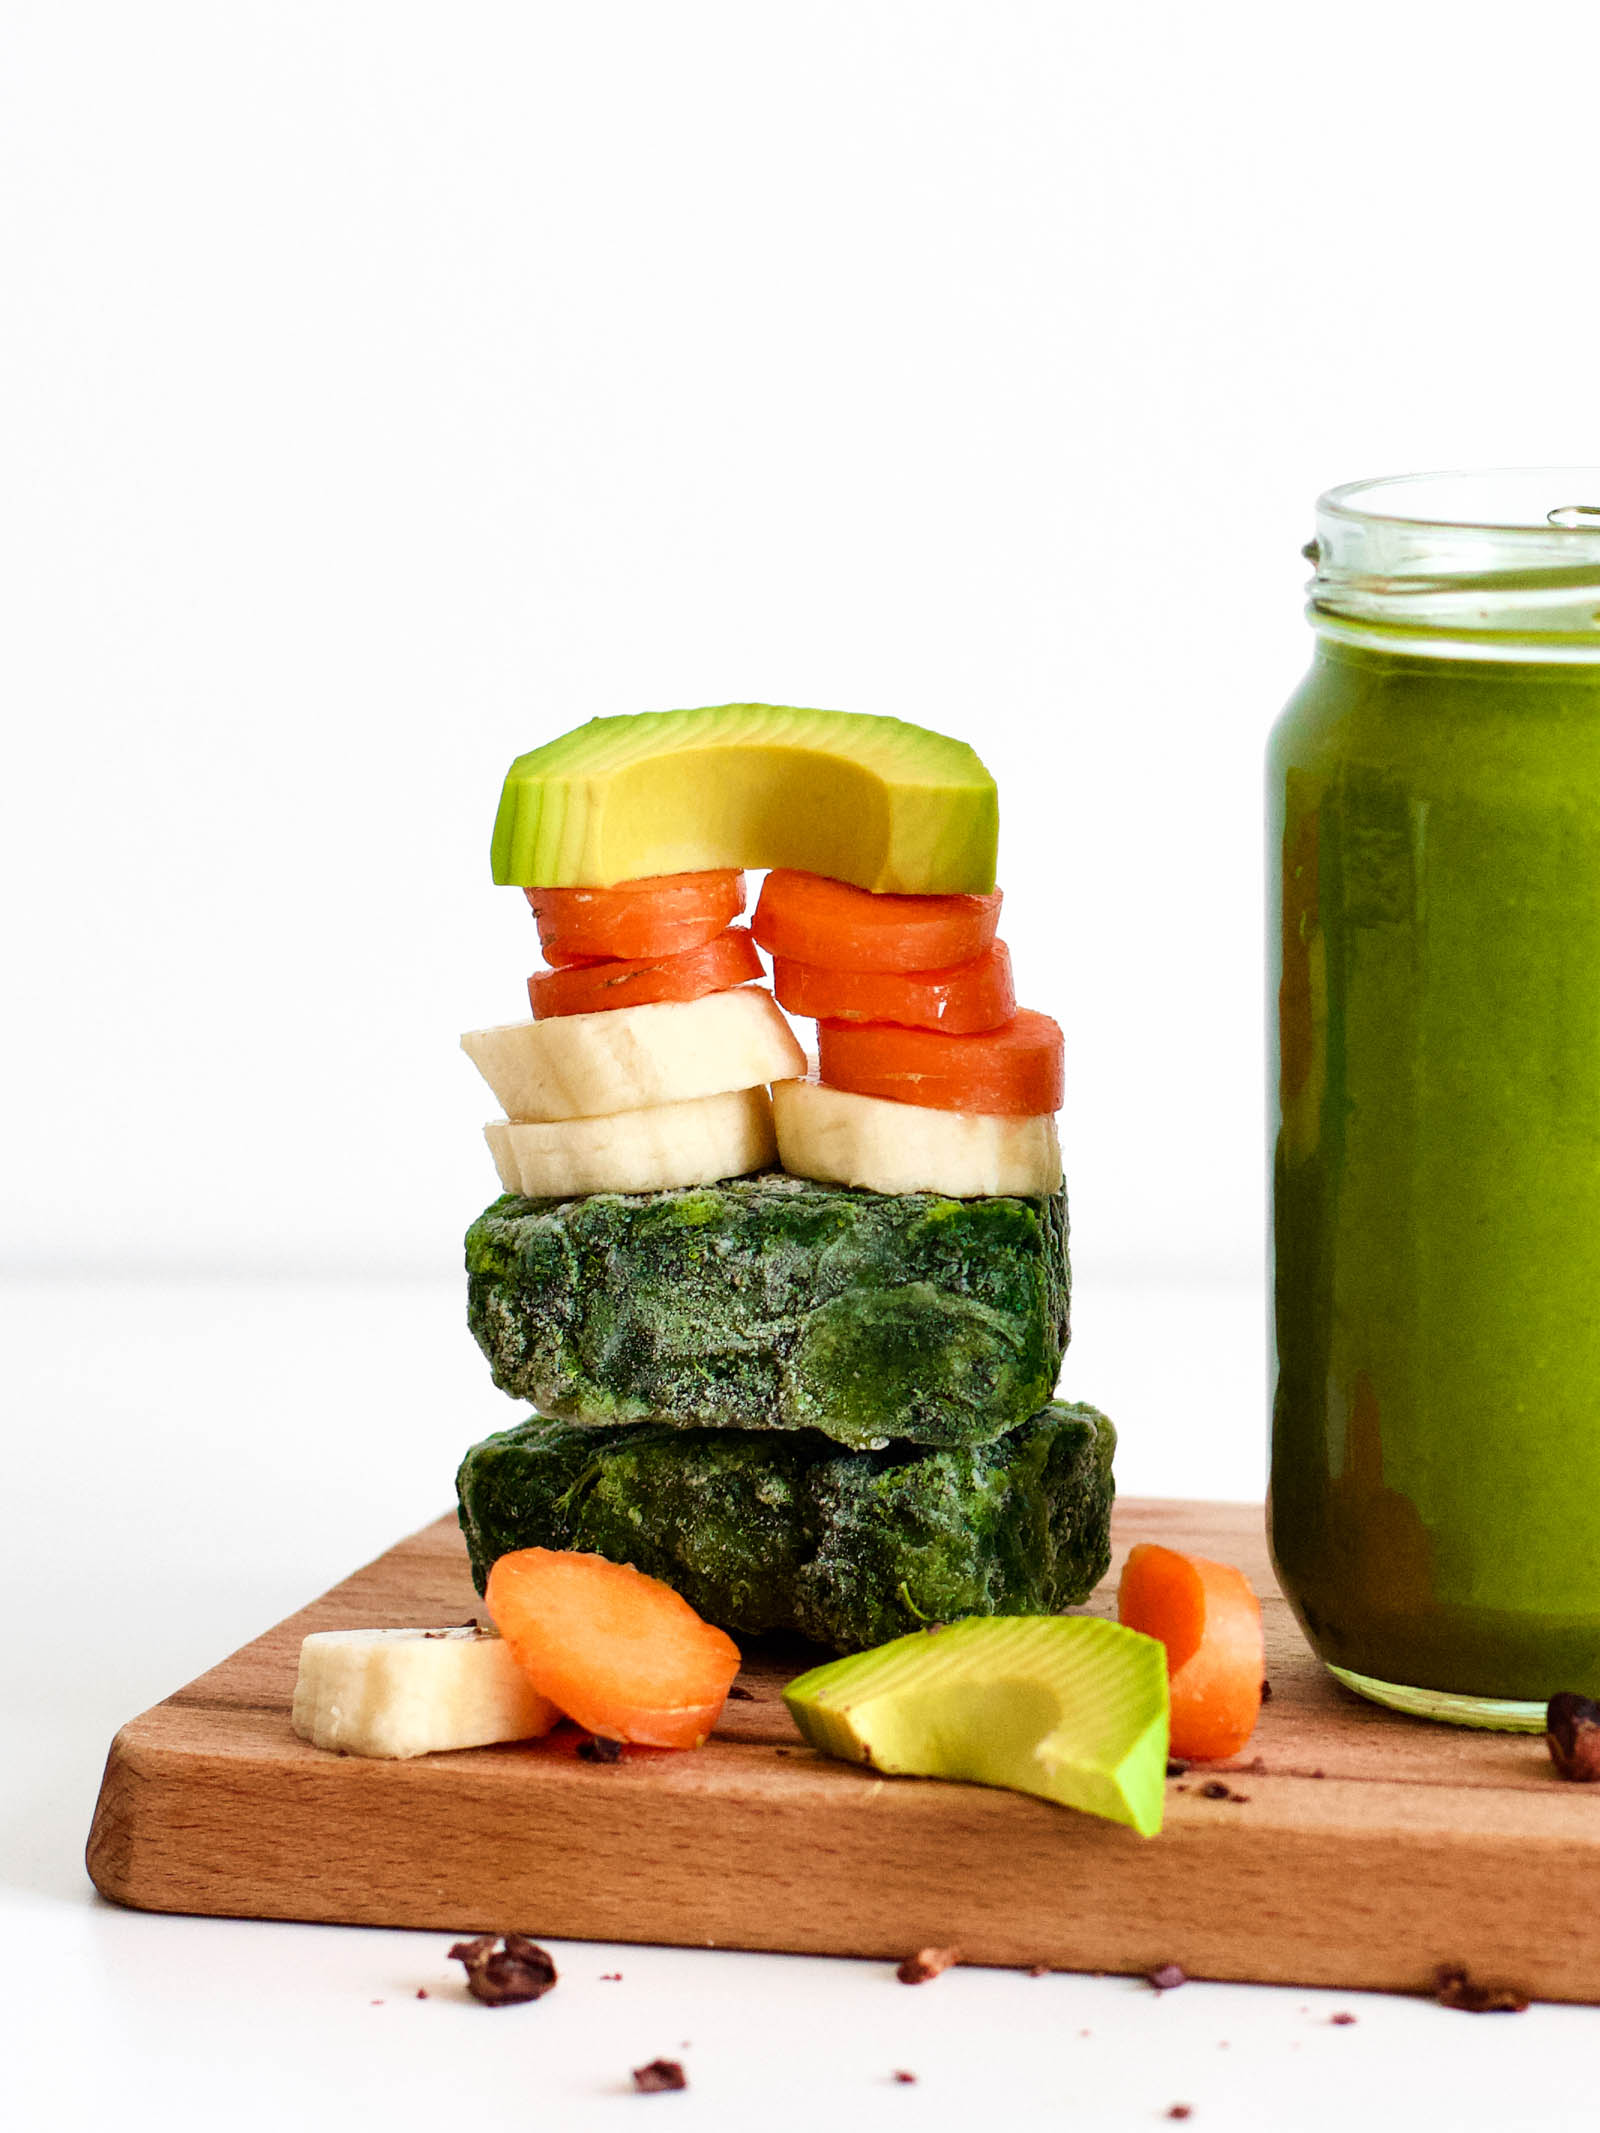 Stack of vegetables used in the 5 Ingredients Simple Green Smoothie recipe.